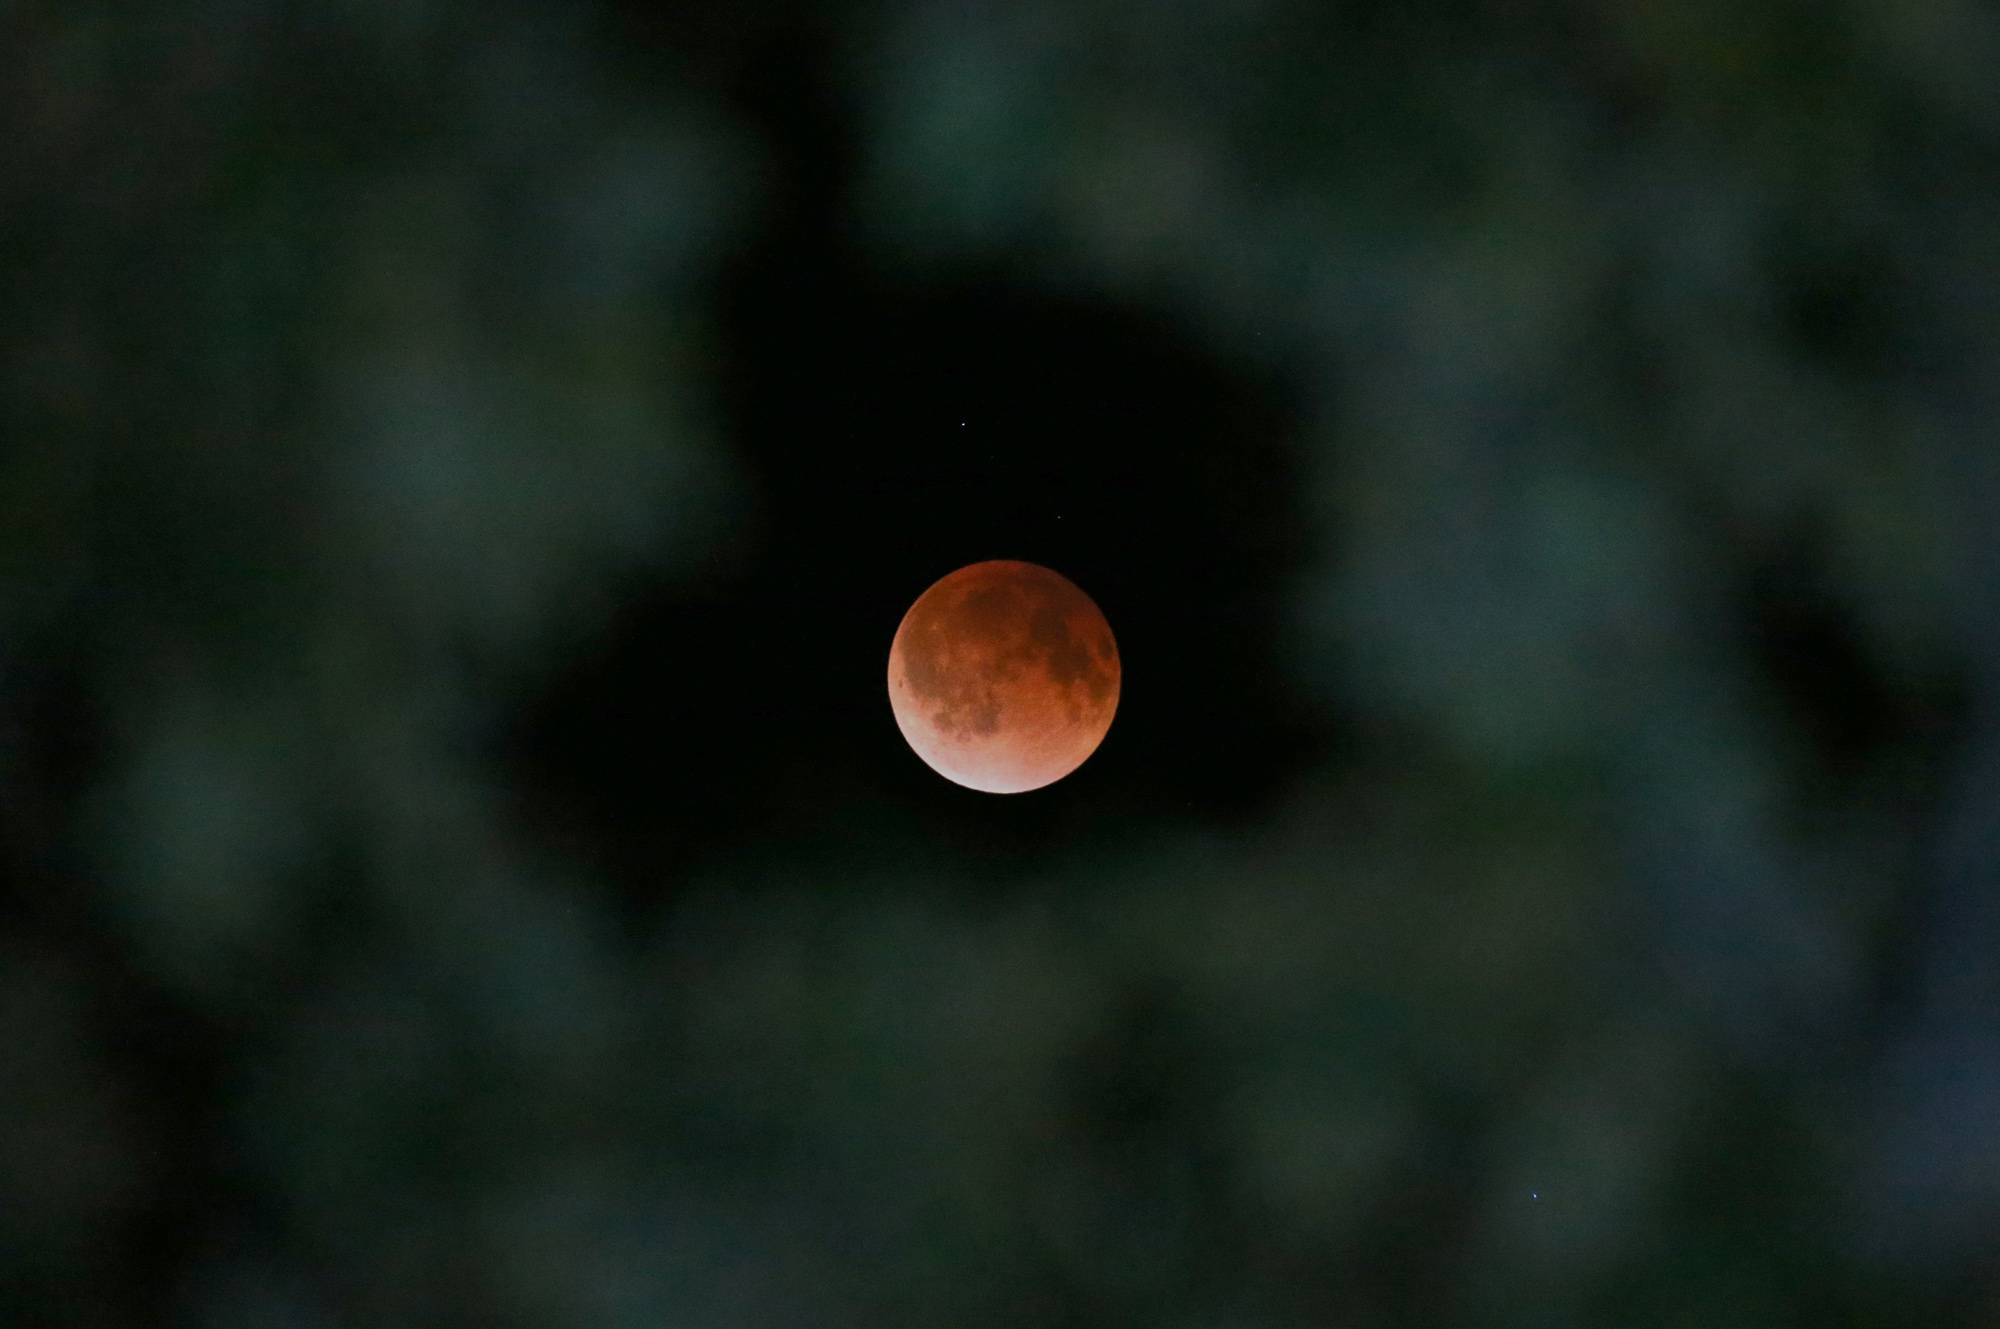 The Earth's shadow is cast over the surface of the moon as a total lunar eclipse is seen though a Magnolia tree top in the sky over Tyler, Texas at 2:57 CDT on Tuesday morning, April 15, 2014.